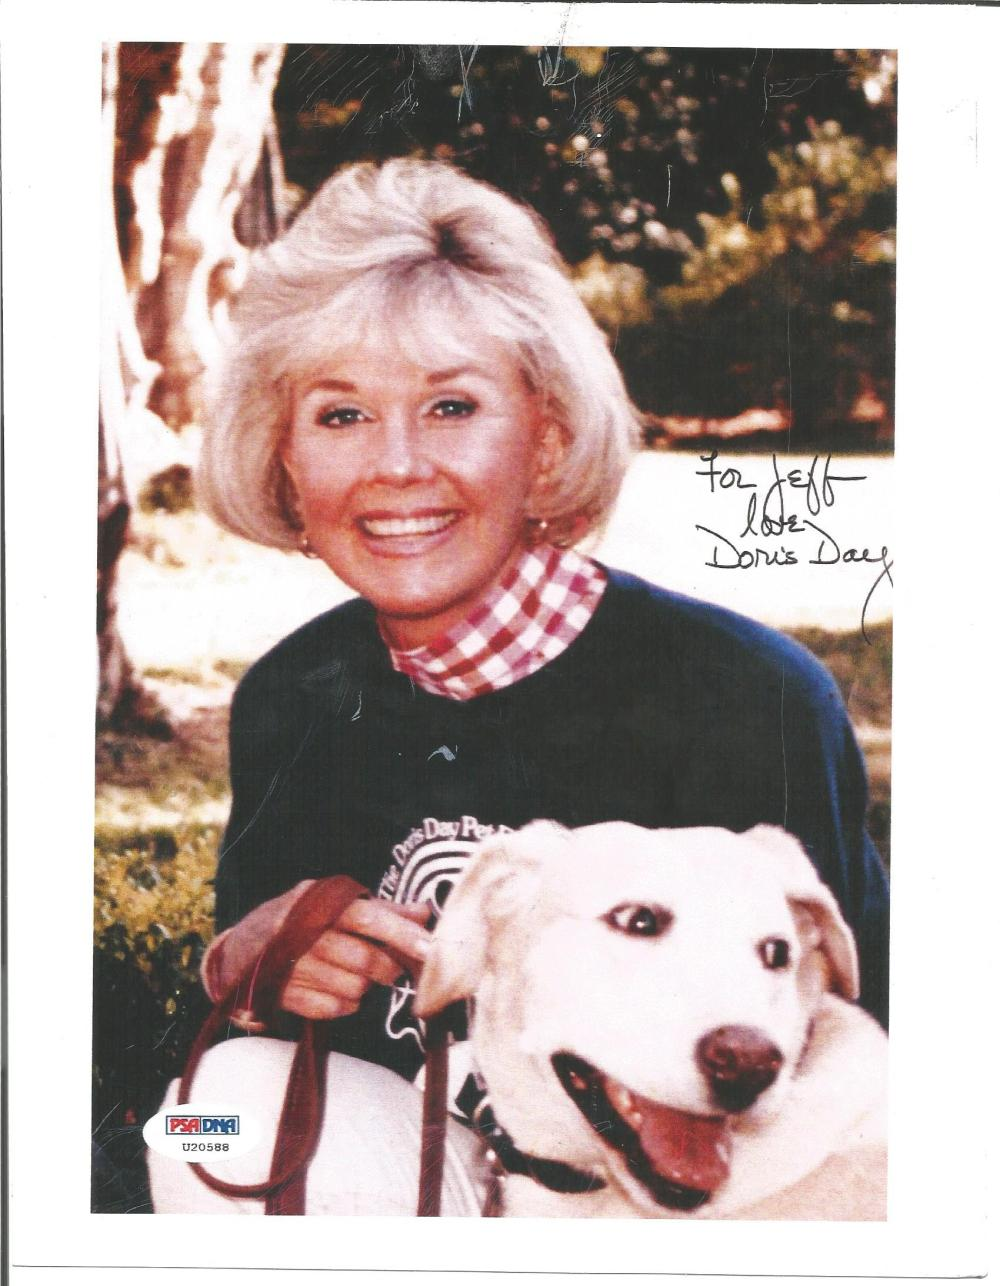 Doris Day signed 10 x 8 colour photo to Jeff, seated with her dog, has PSA DNA hologram. Comes